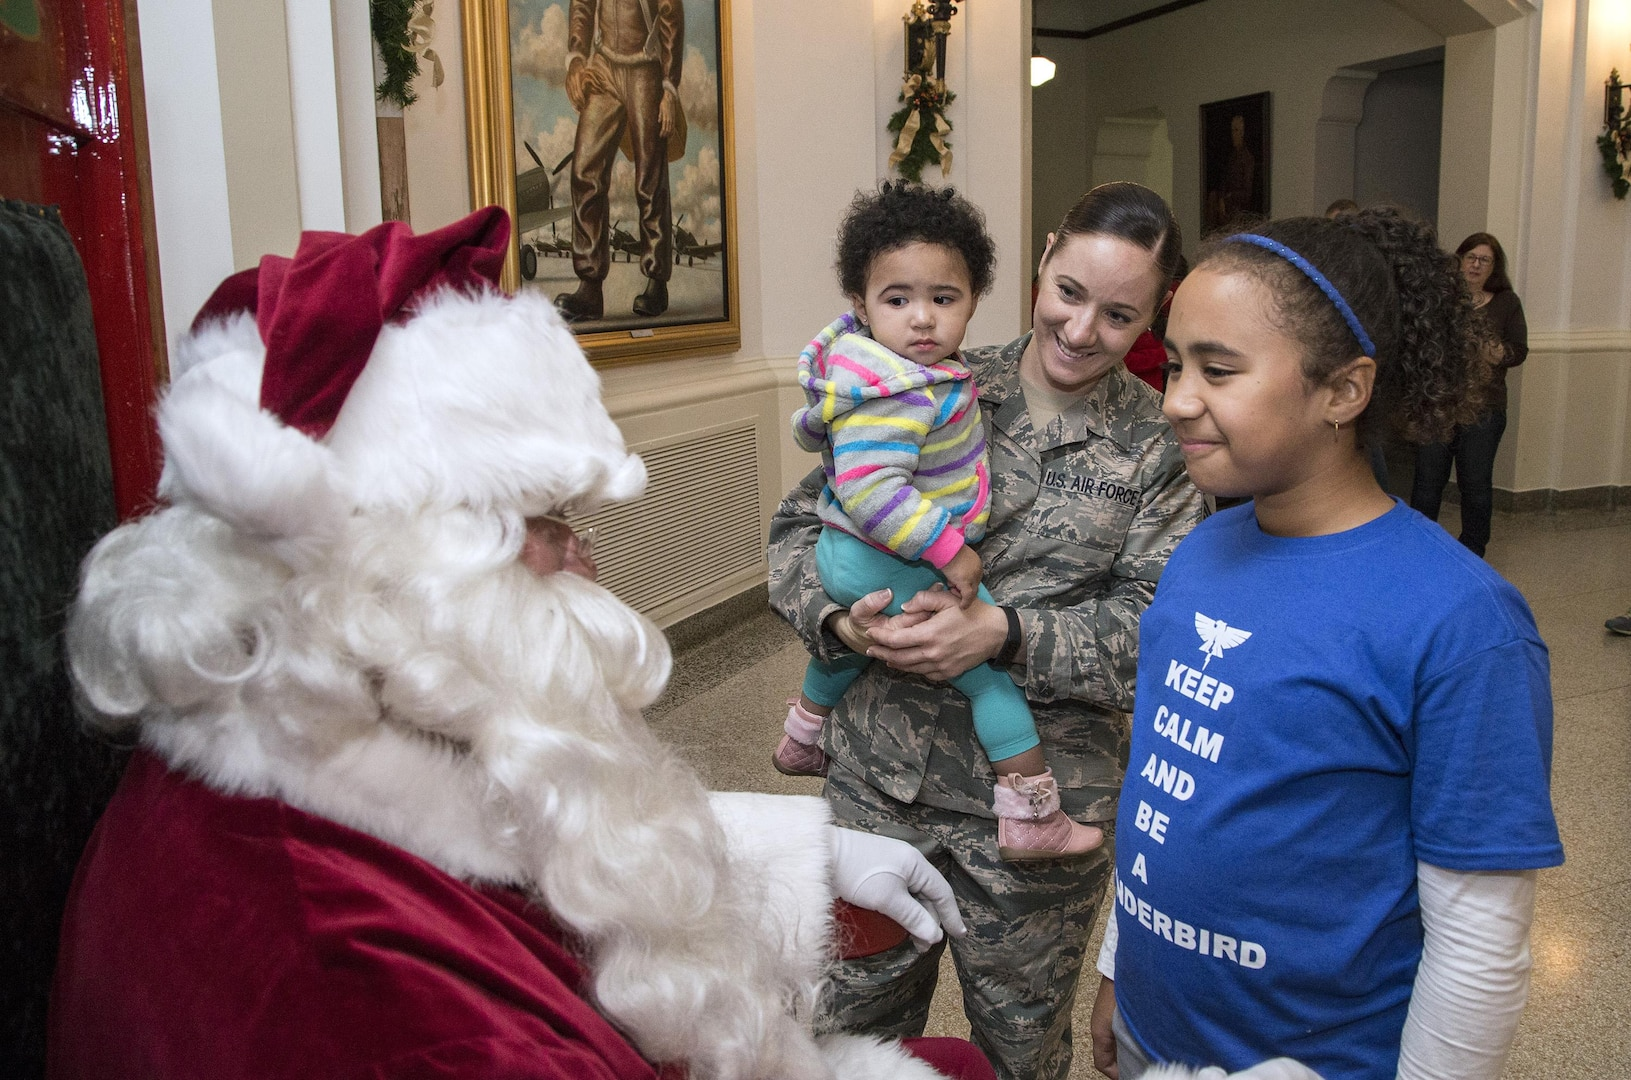 Family photo Master Sgt. Mary Clark from the Air Force Personnel Center,  brought her daughters, Kyra and Jordyn for photos with Santa Claus Dec. 3 in the Taj.  Santa posed for photos following the Joint Base San Antonio-Randolph  tree lighting ceremony Dec. 3.  About 300 people were in attendance for the event, with the Randolph High School Band and Randolph Elementary School choir providing holiday music in anticipation of Santa's arrival.